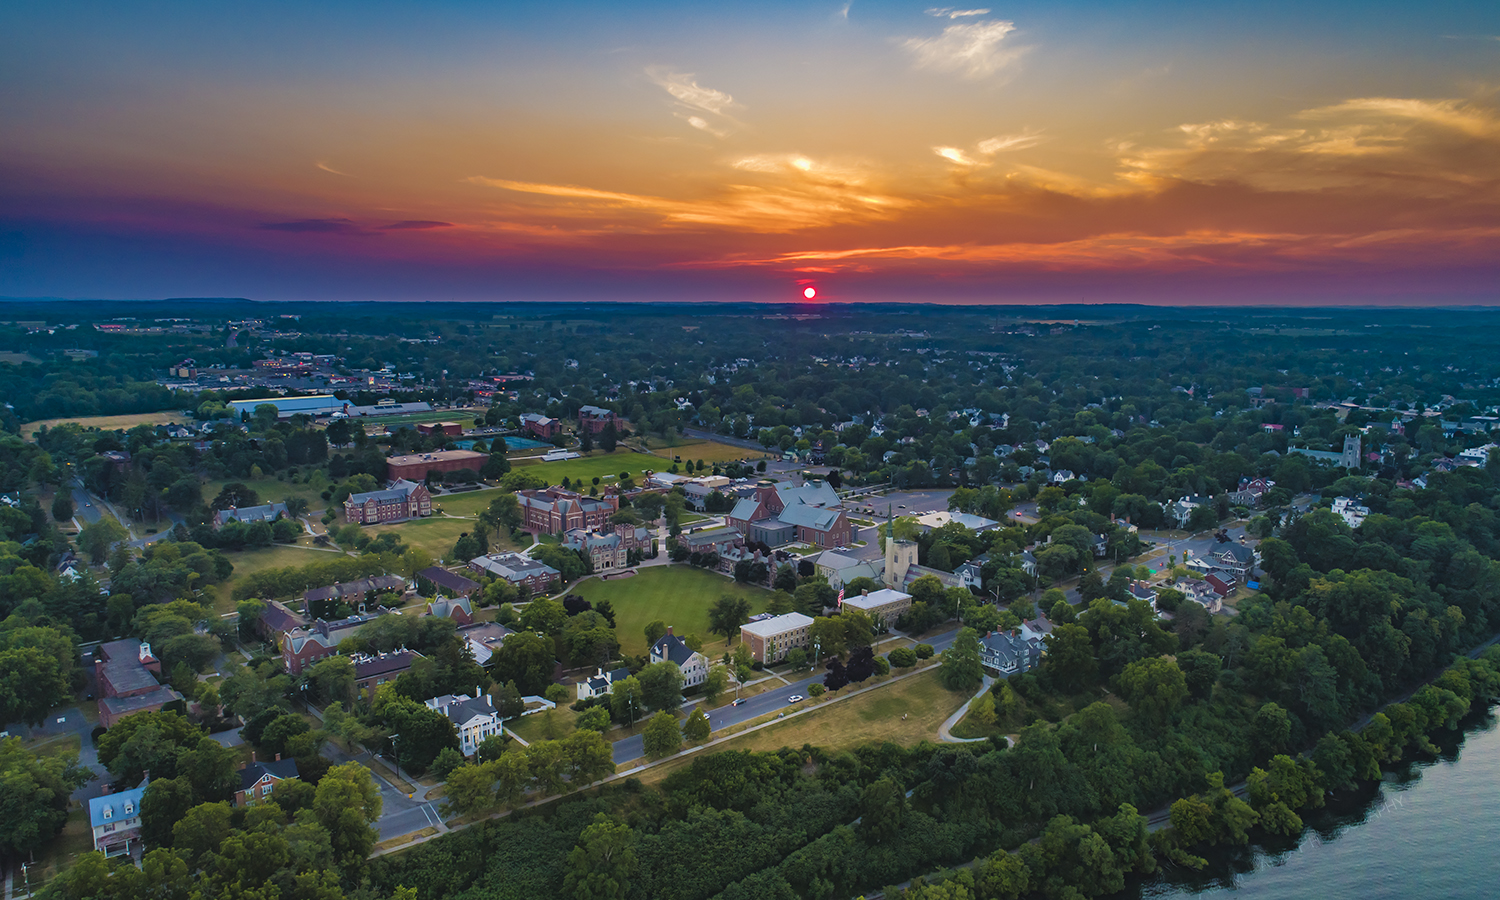 A midsummer sunset over the Hobart and William Smith Colleges campus.